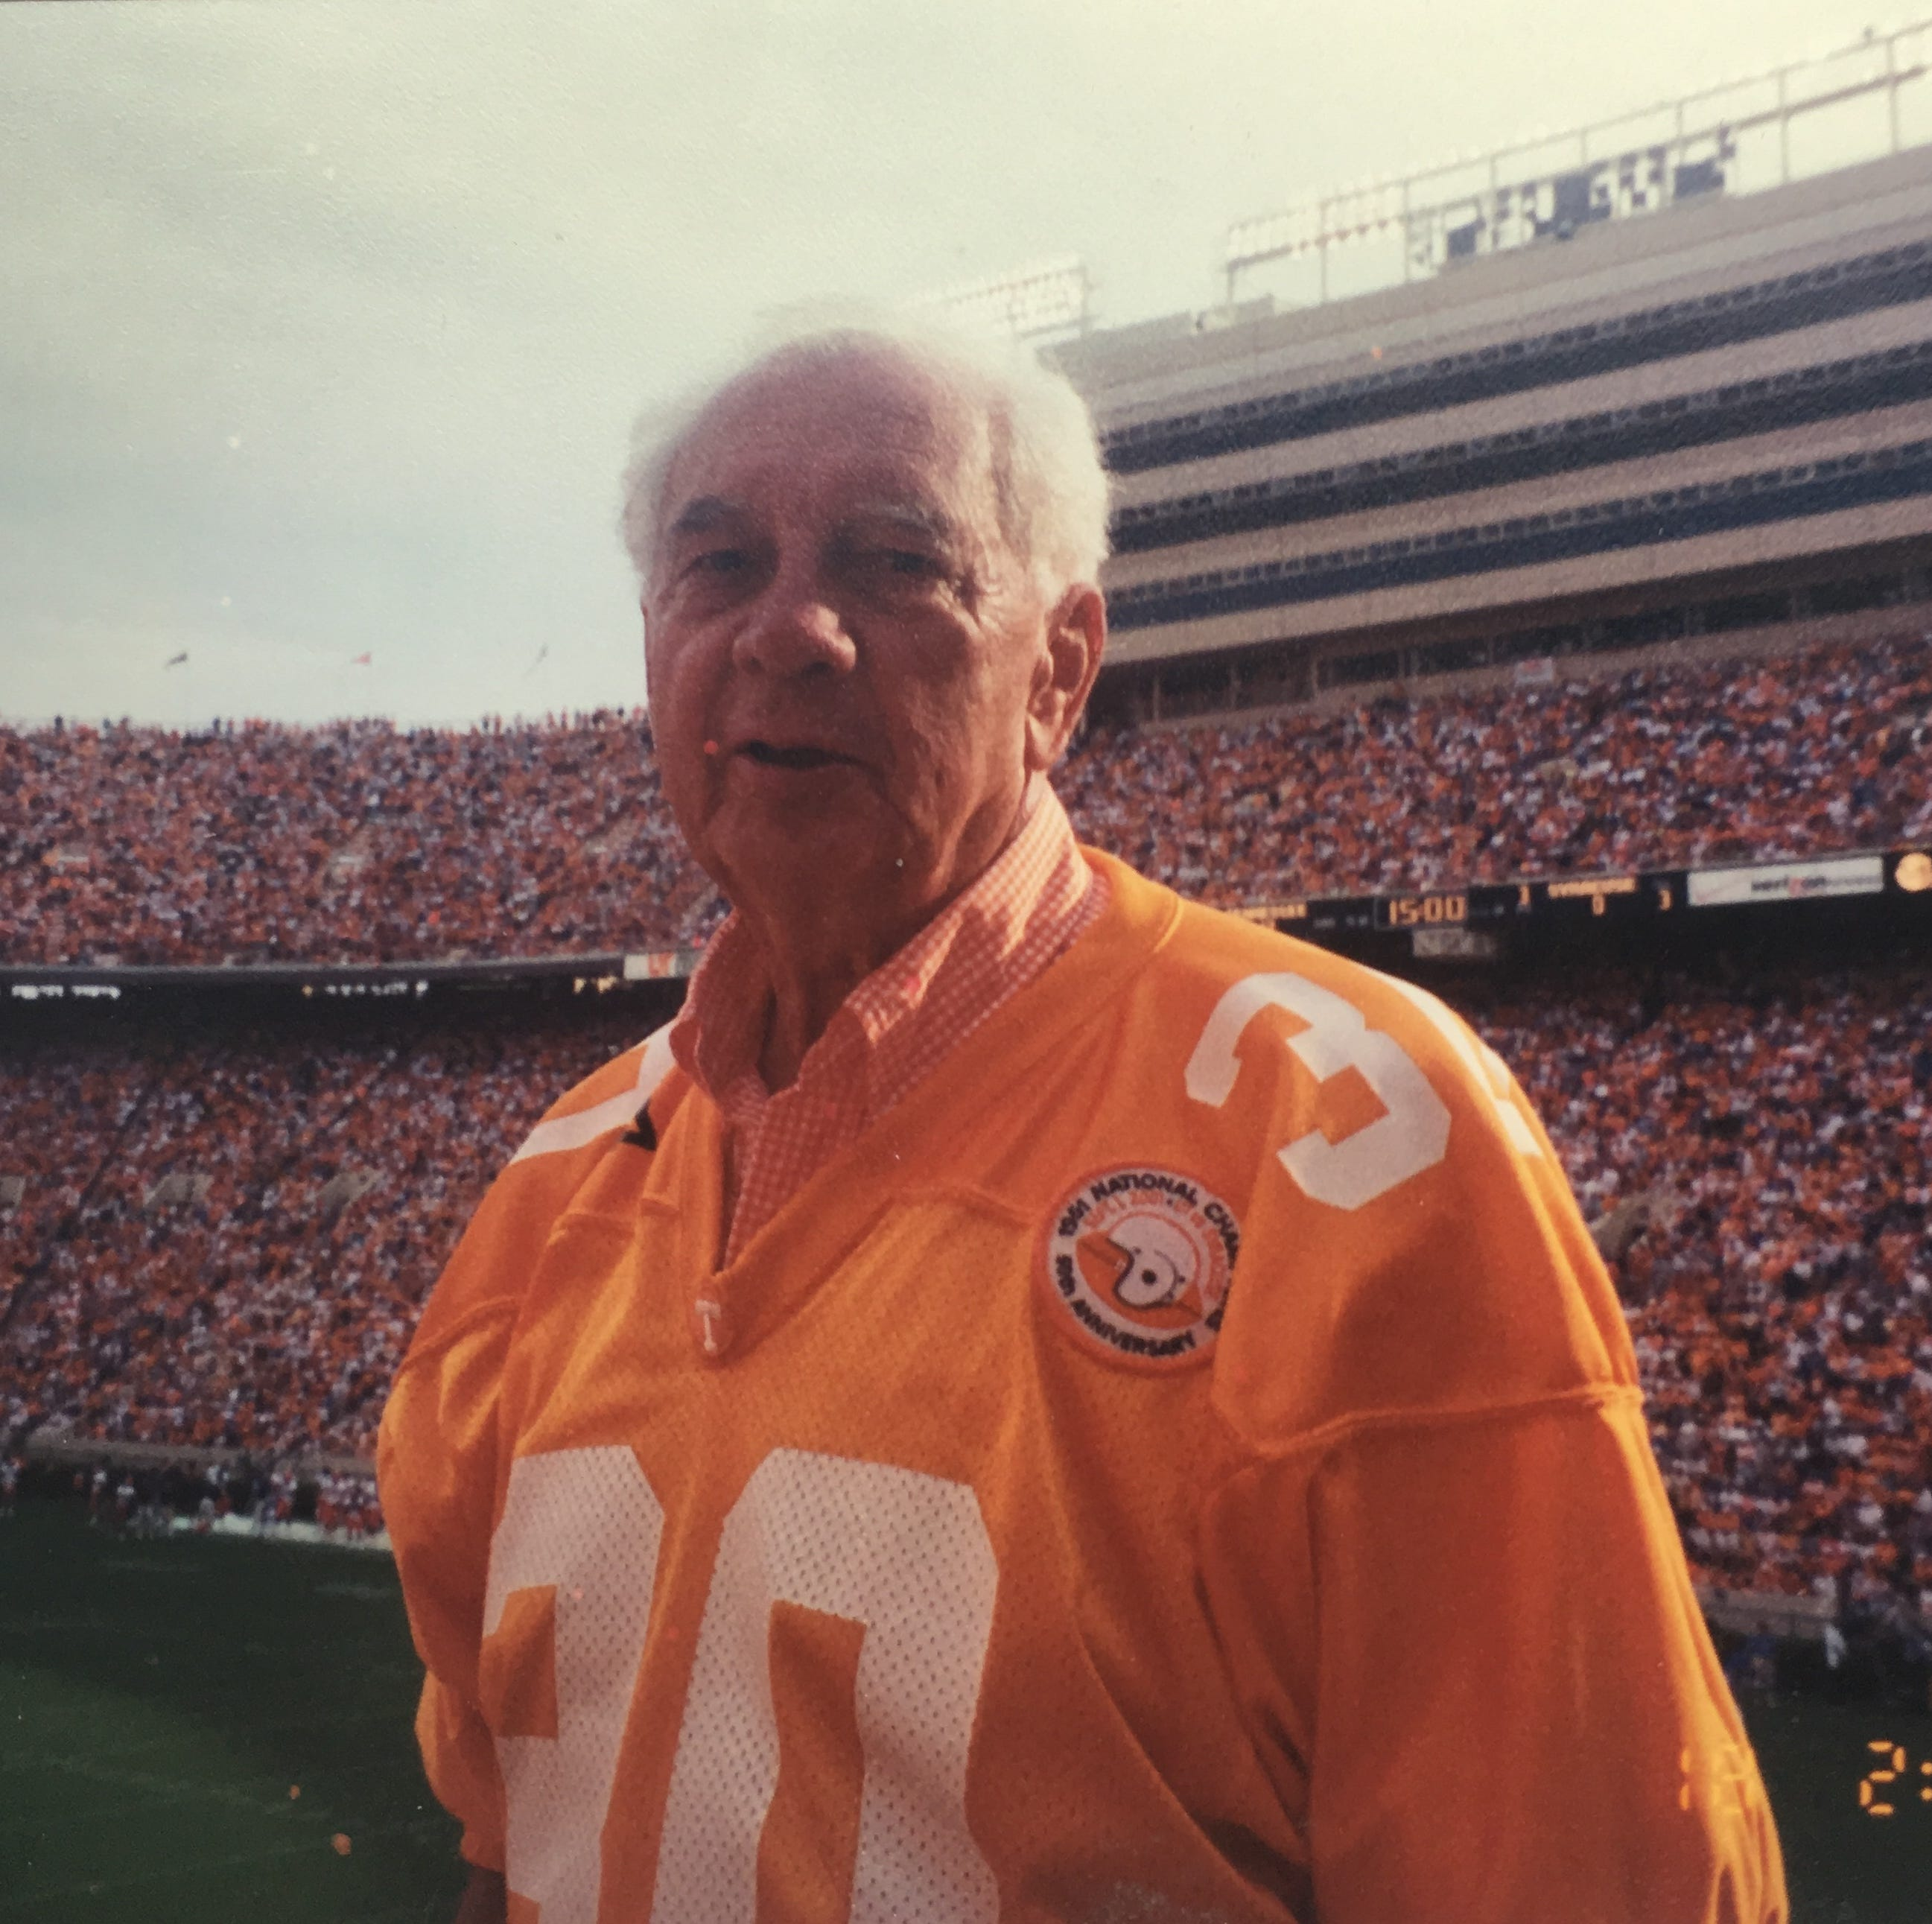 Ollie Keller, member of Tennessee football's 1951 national championship team, dies at 90